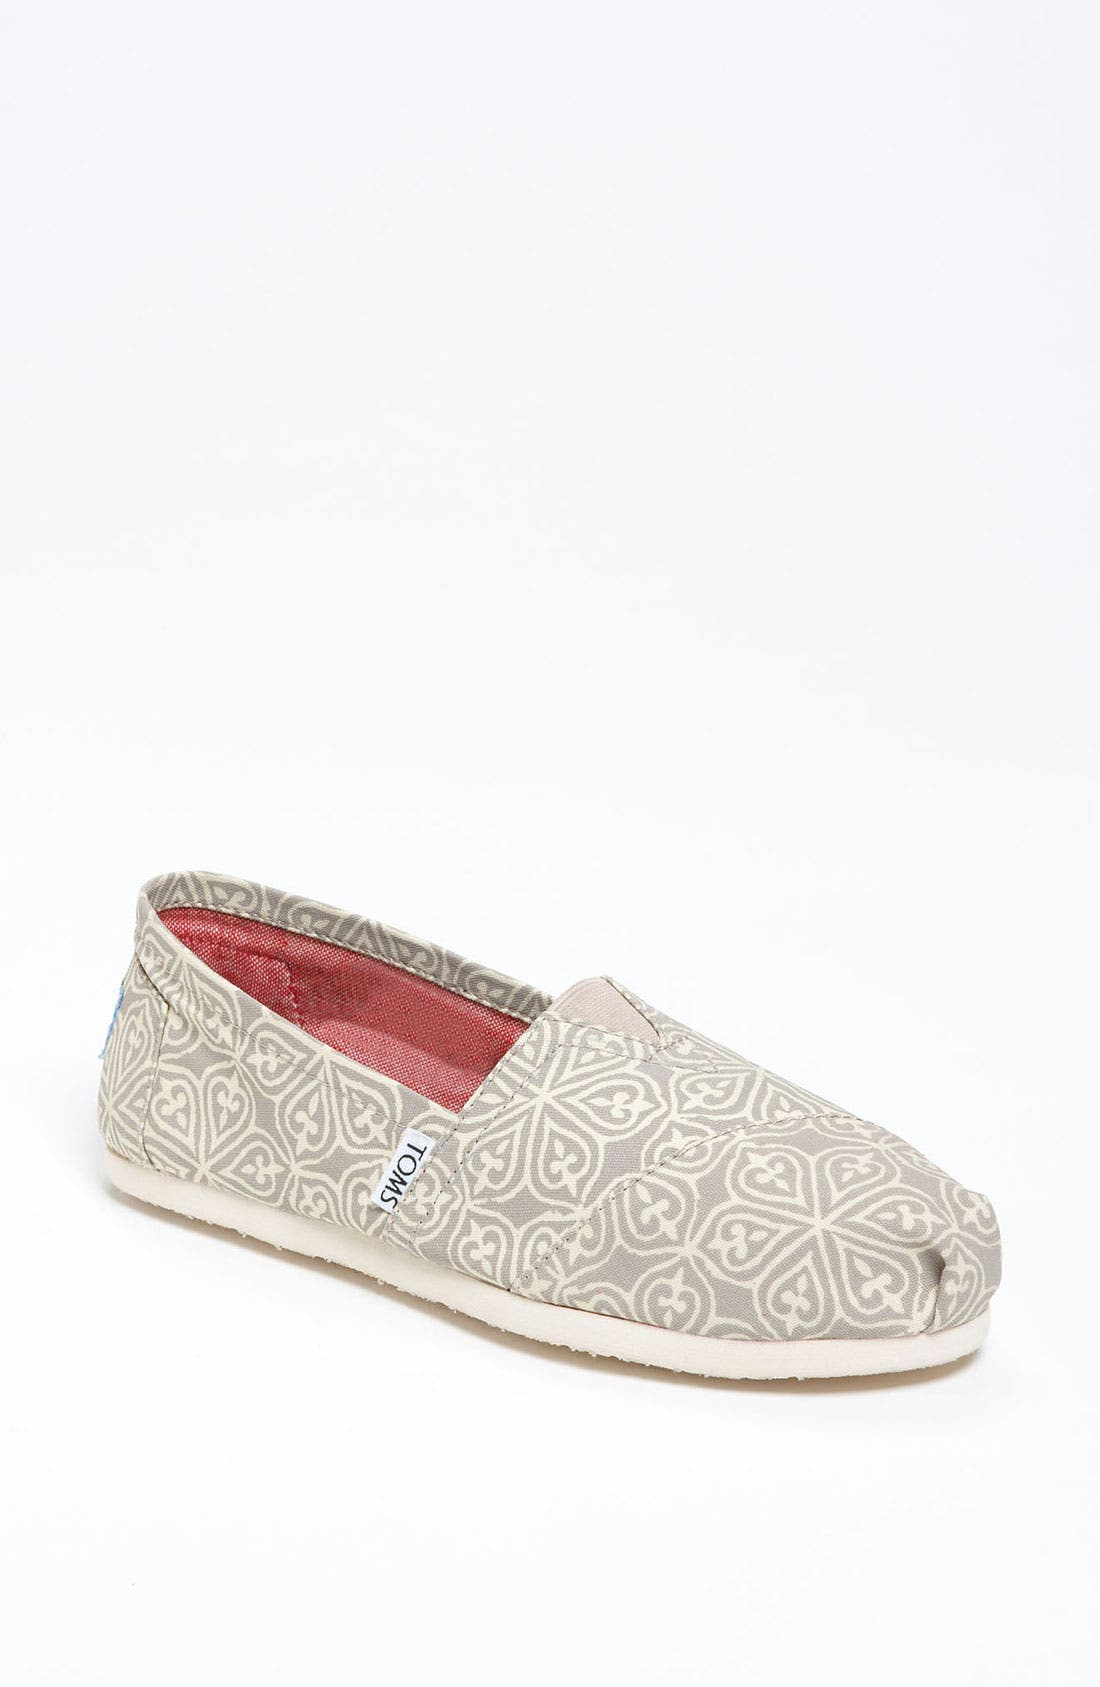 Alternate Image 1 Selected - TOMS 'Classic - Circle' Slip-On (Women)